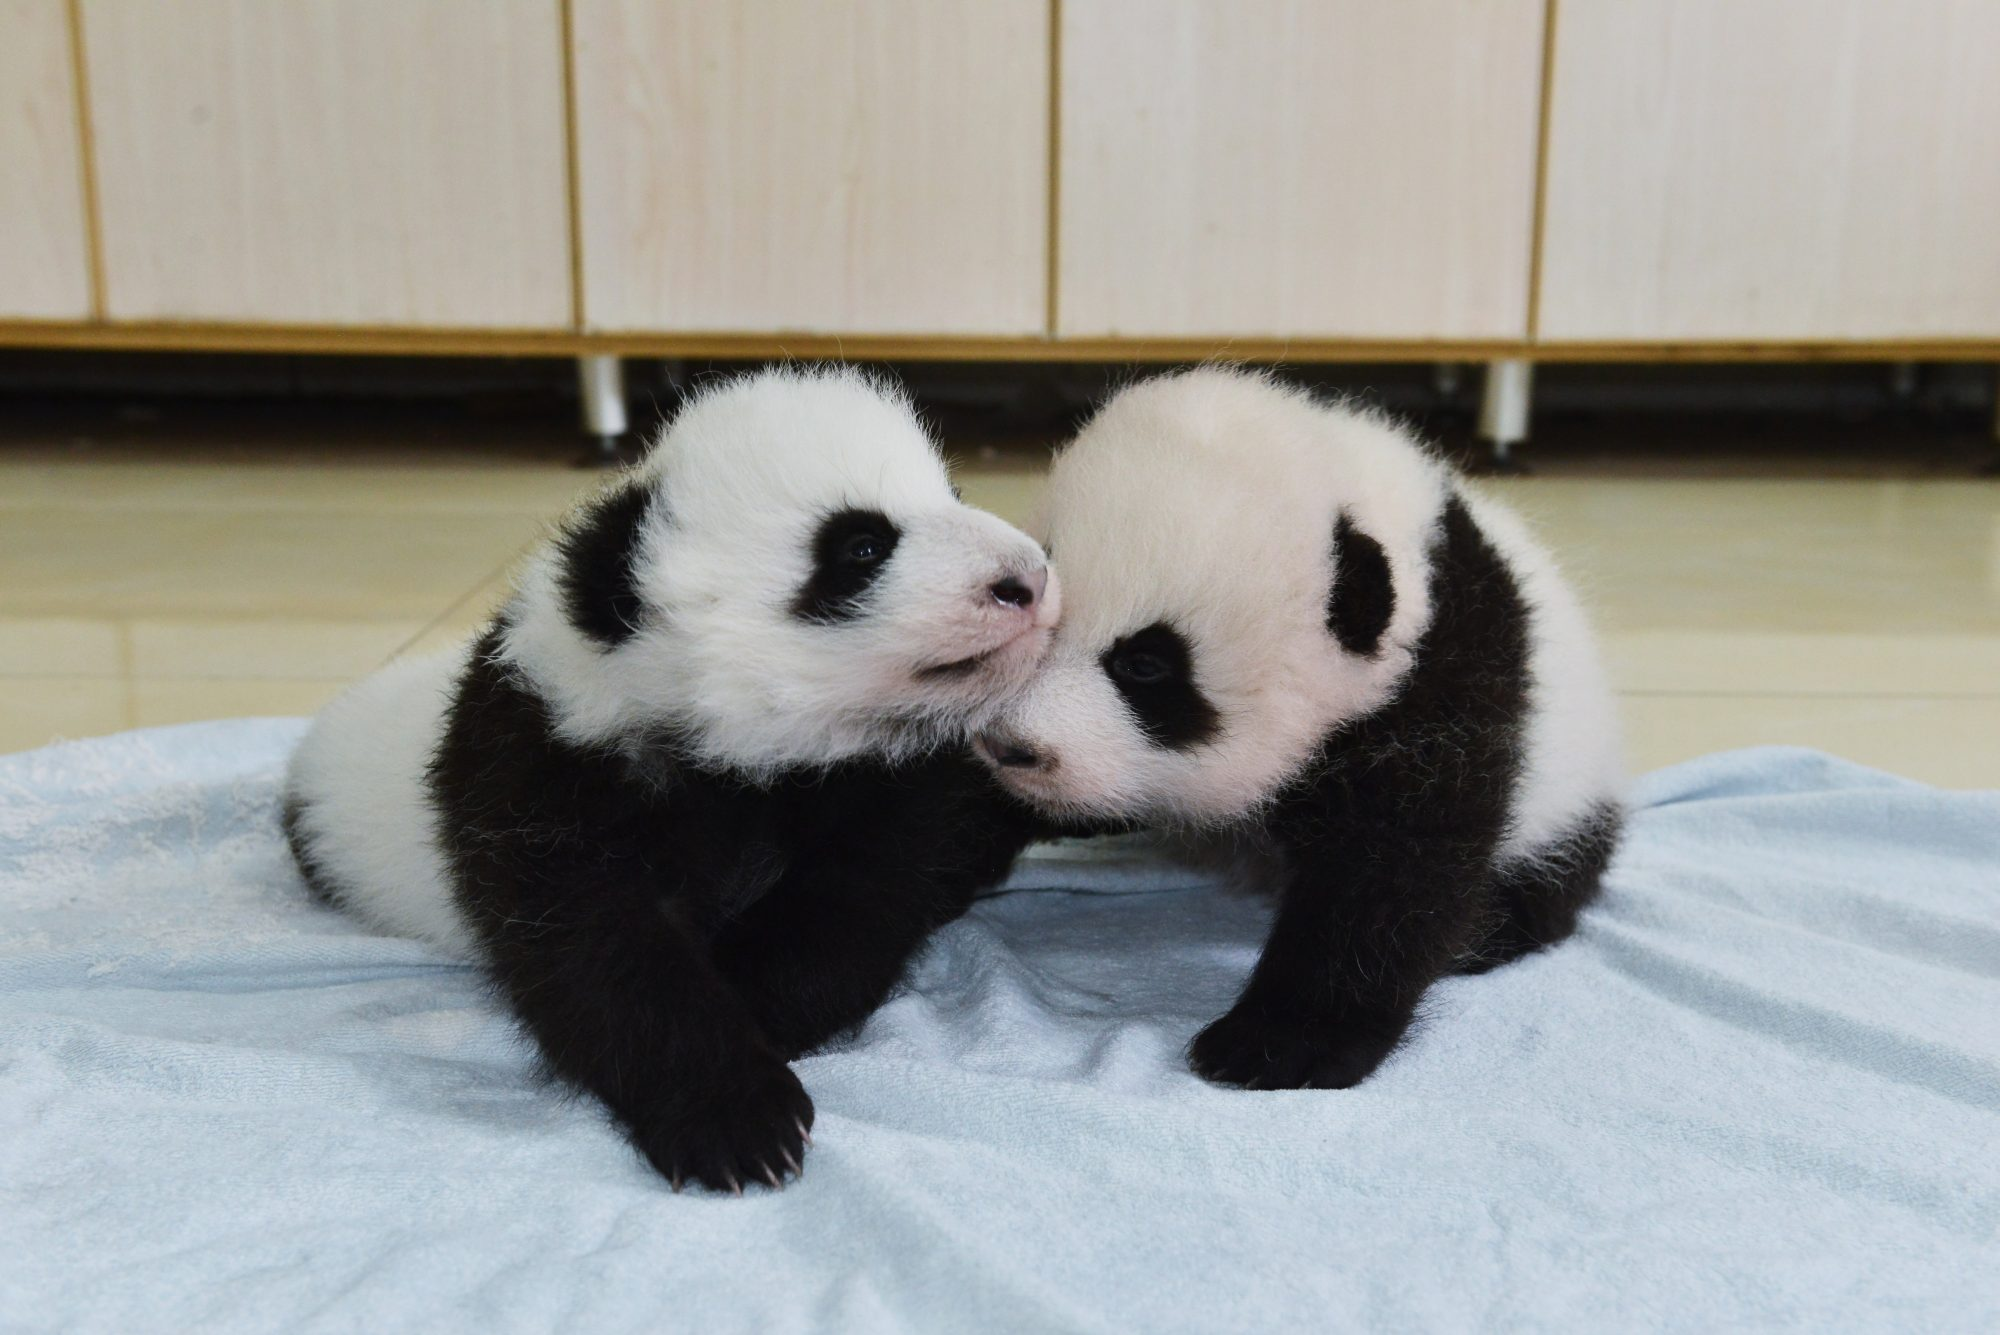 New born baby giant pandas appear at China Conservation and Research Center for the Giant Panda on October 24, 2015 in Ngawa Tibetan and Qiang Autonomous Prefecture, Sichuan Province of China.